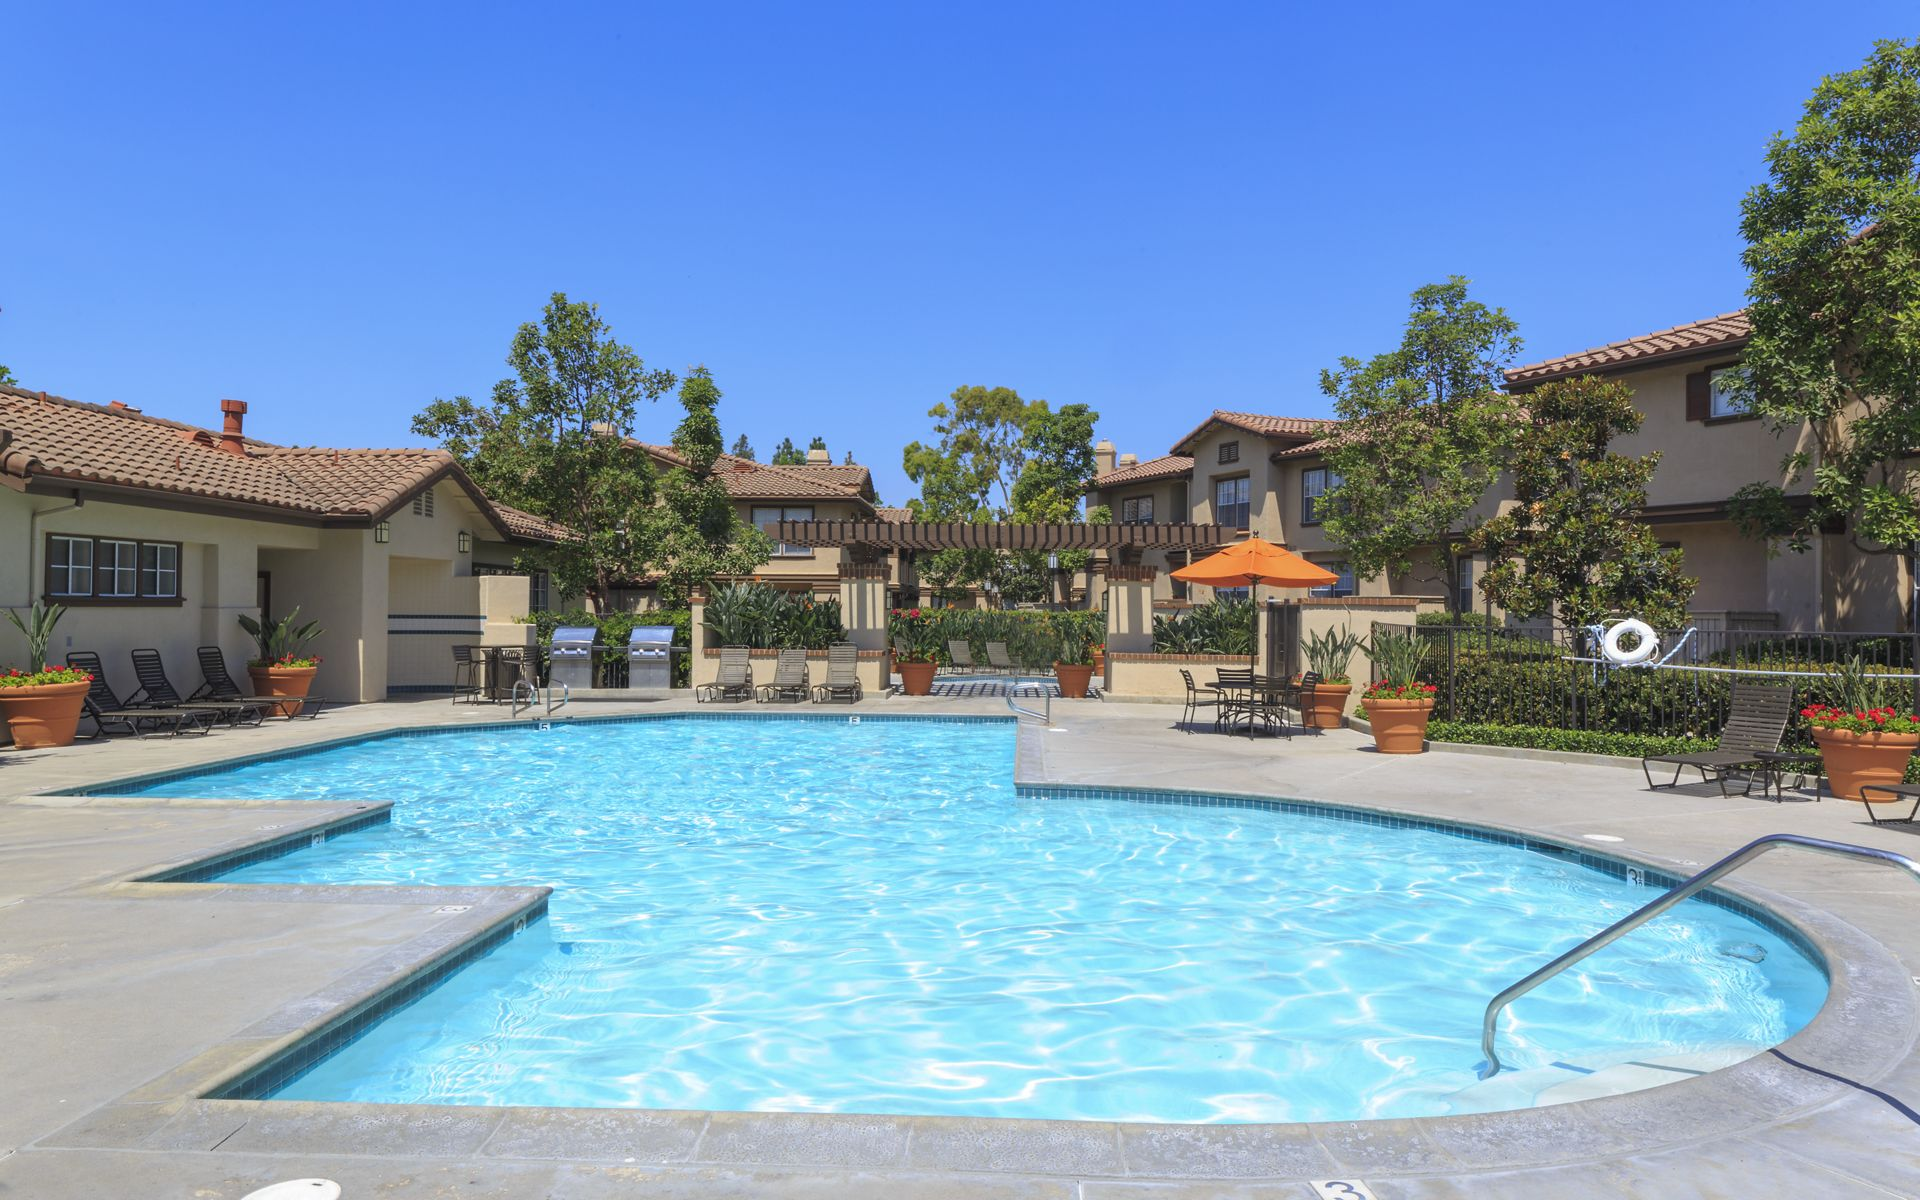 View of pool at Rancho Maderas Apartment Homes in Tustin, CA.